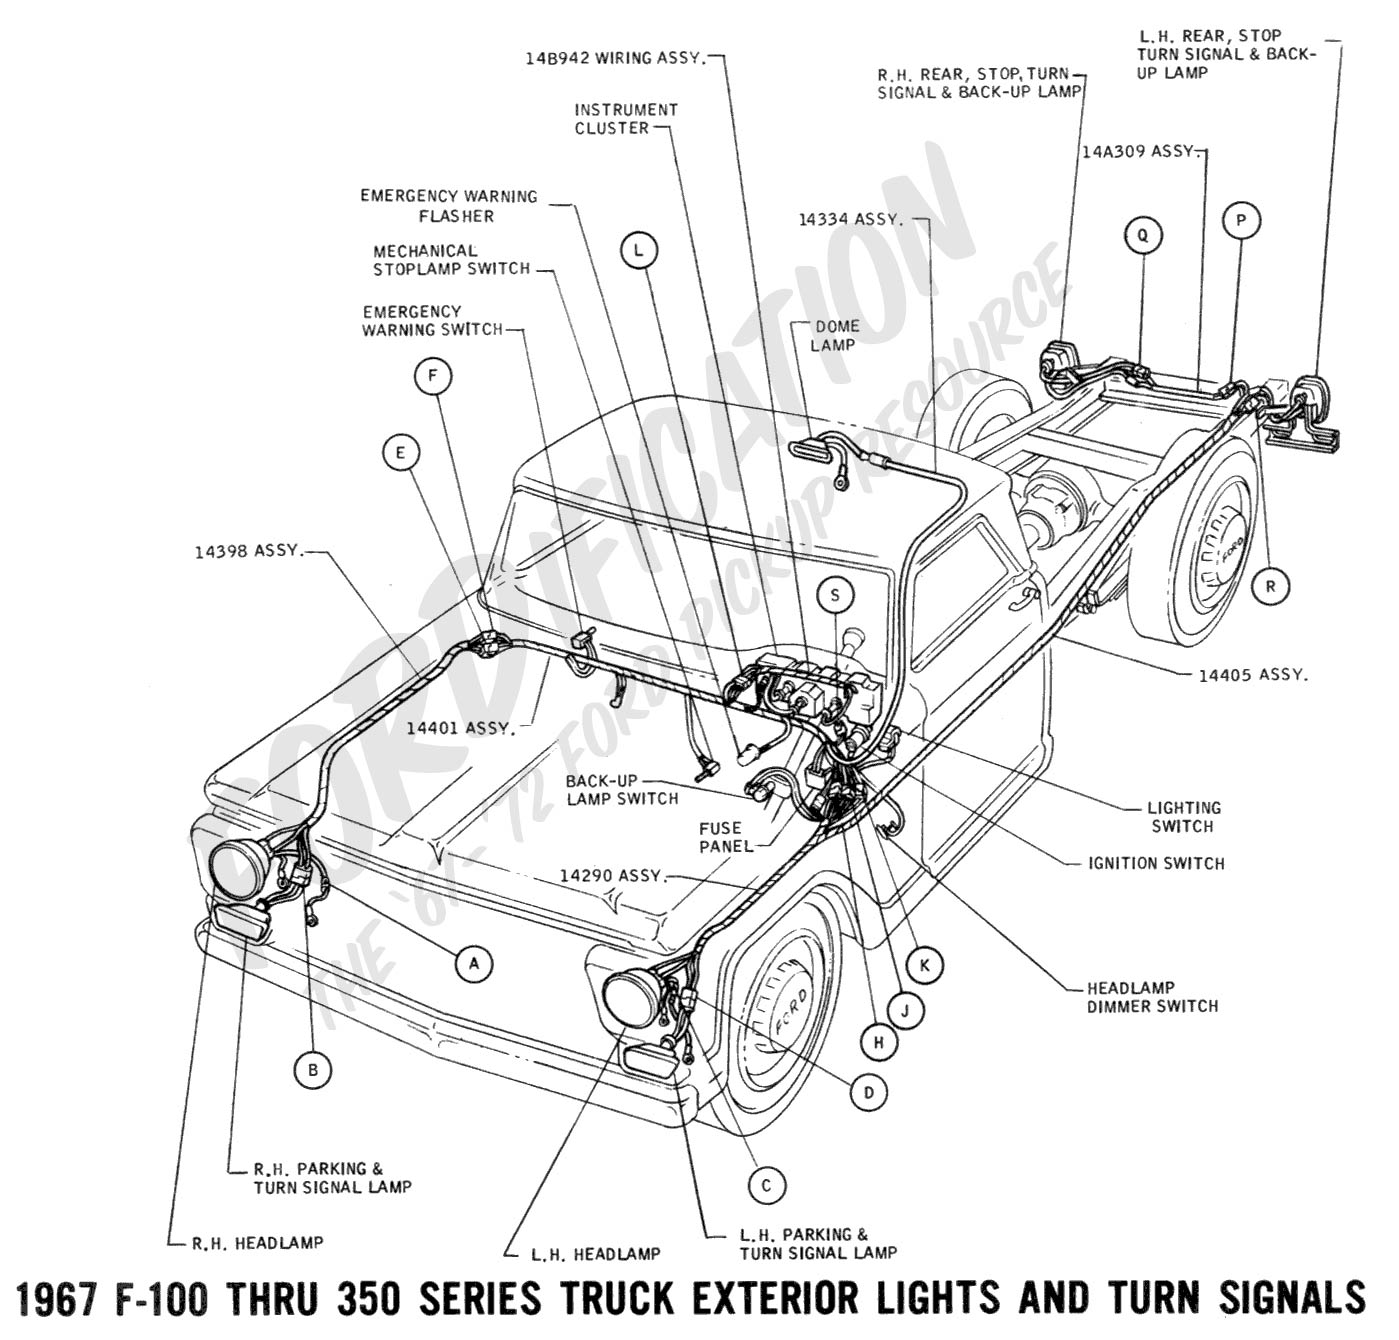 wiring 1967extlights01 ford truck technical drawings and schematics section h wiring 1999 ford ranger xlt wiring diagrams at creativeand.co